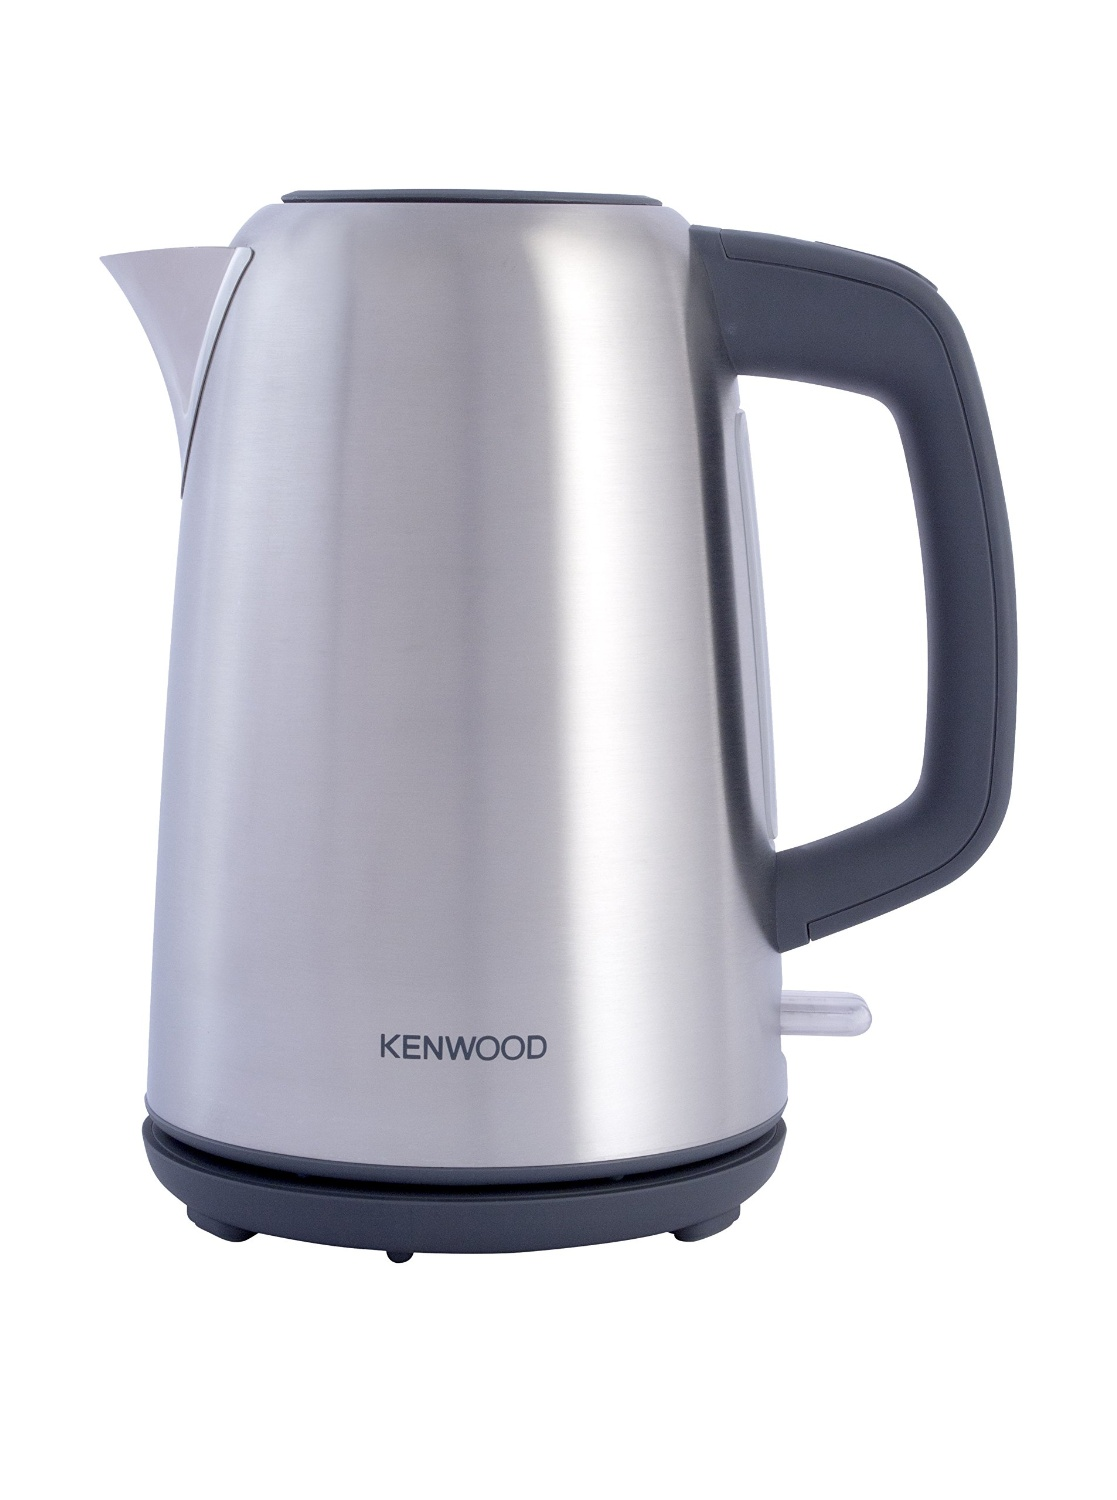 kenwood sjm490 bouilloire scene lectrique 1 7 l comparer avec. Black Bedroom Furniture Sets. Home Design Ideas